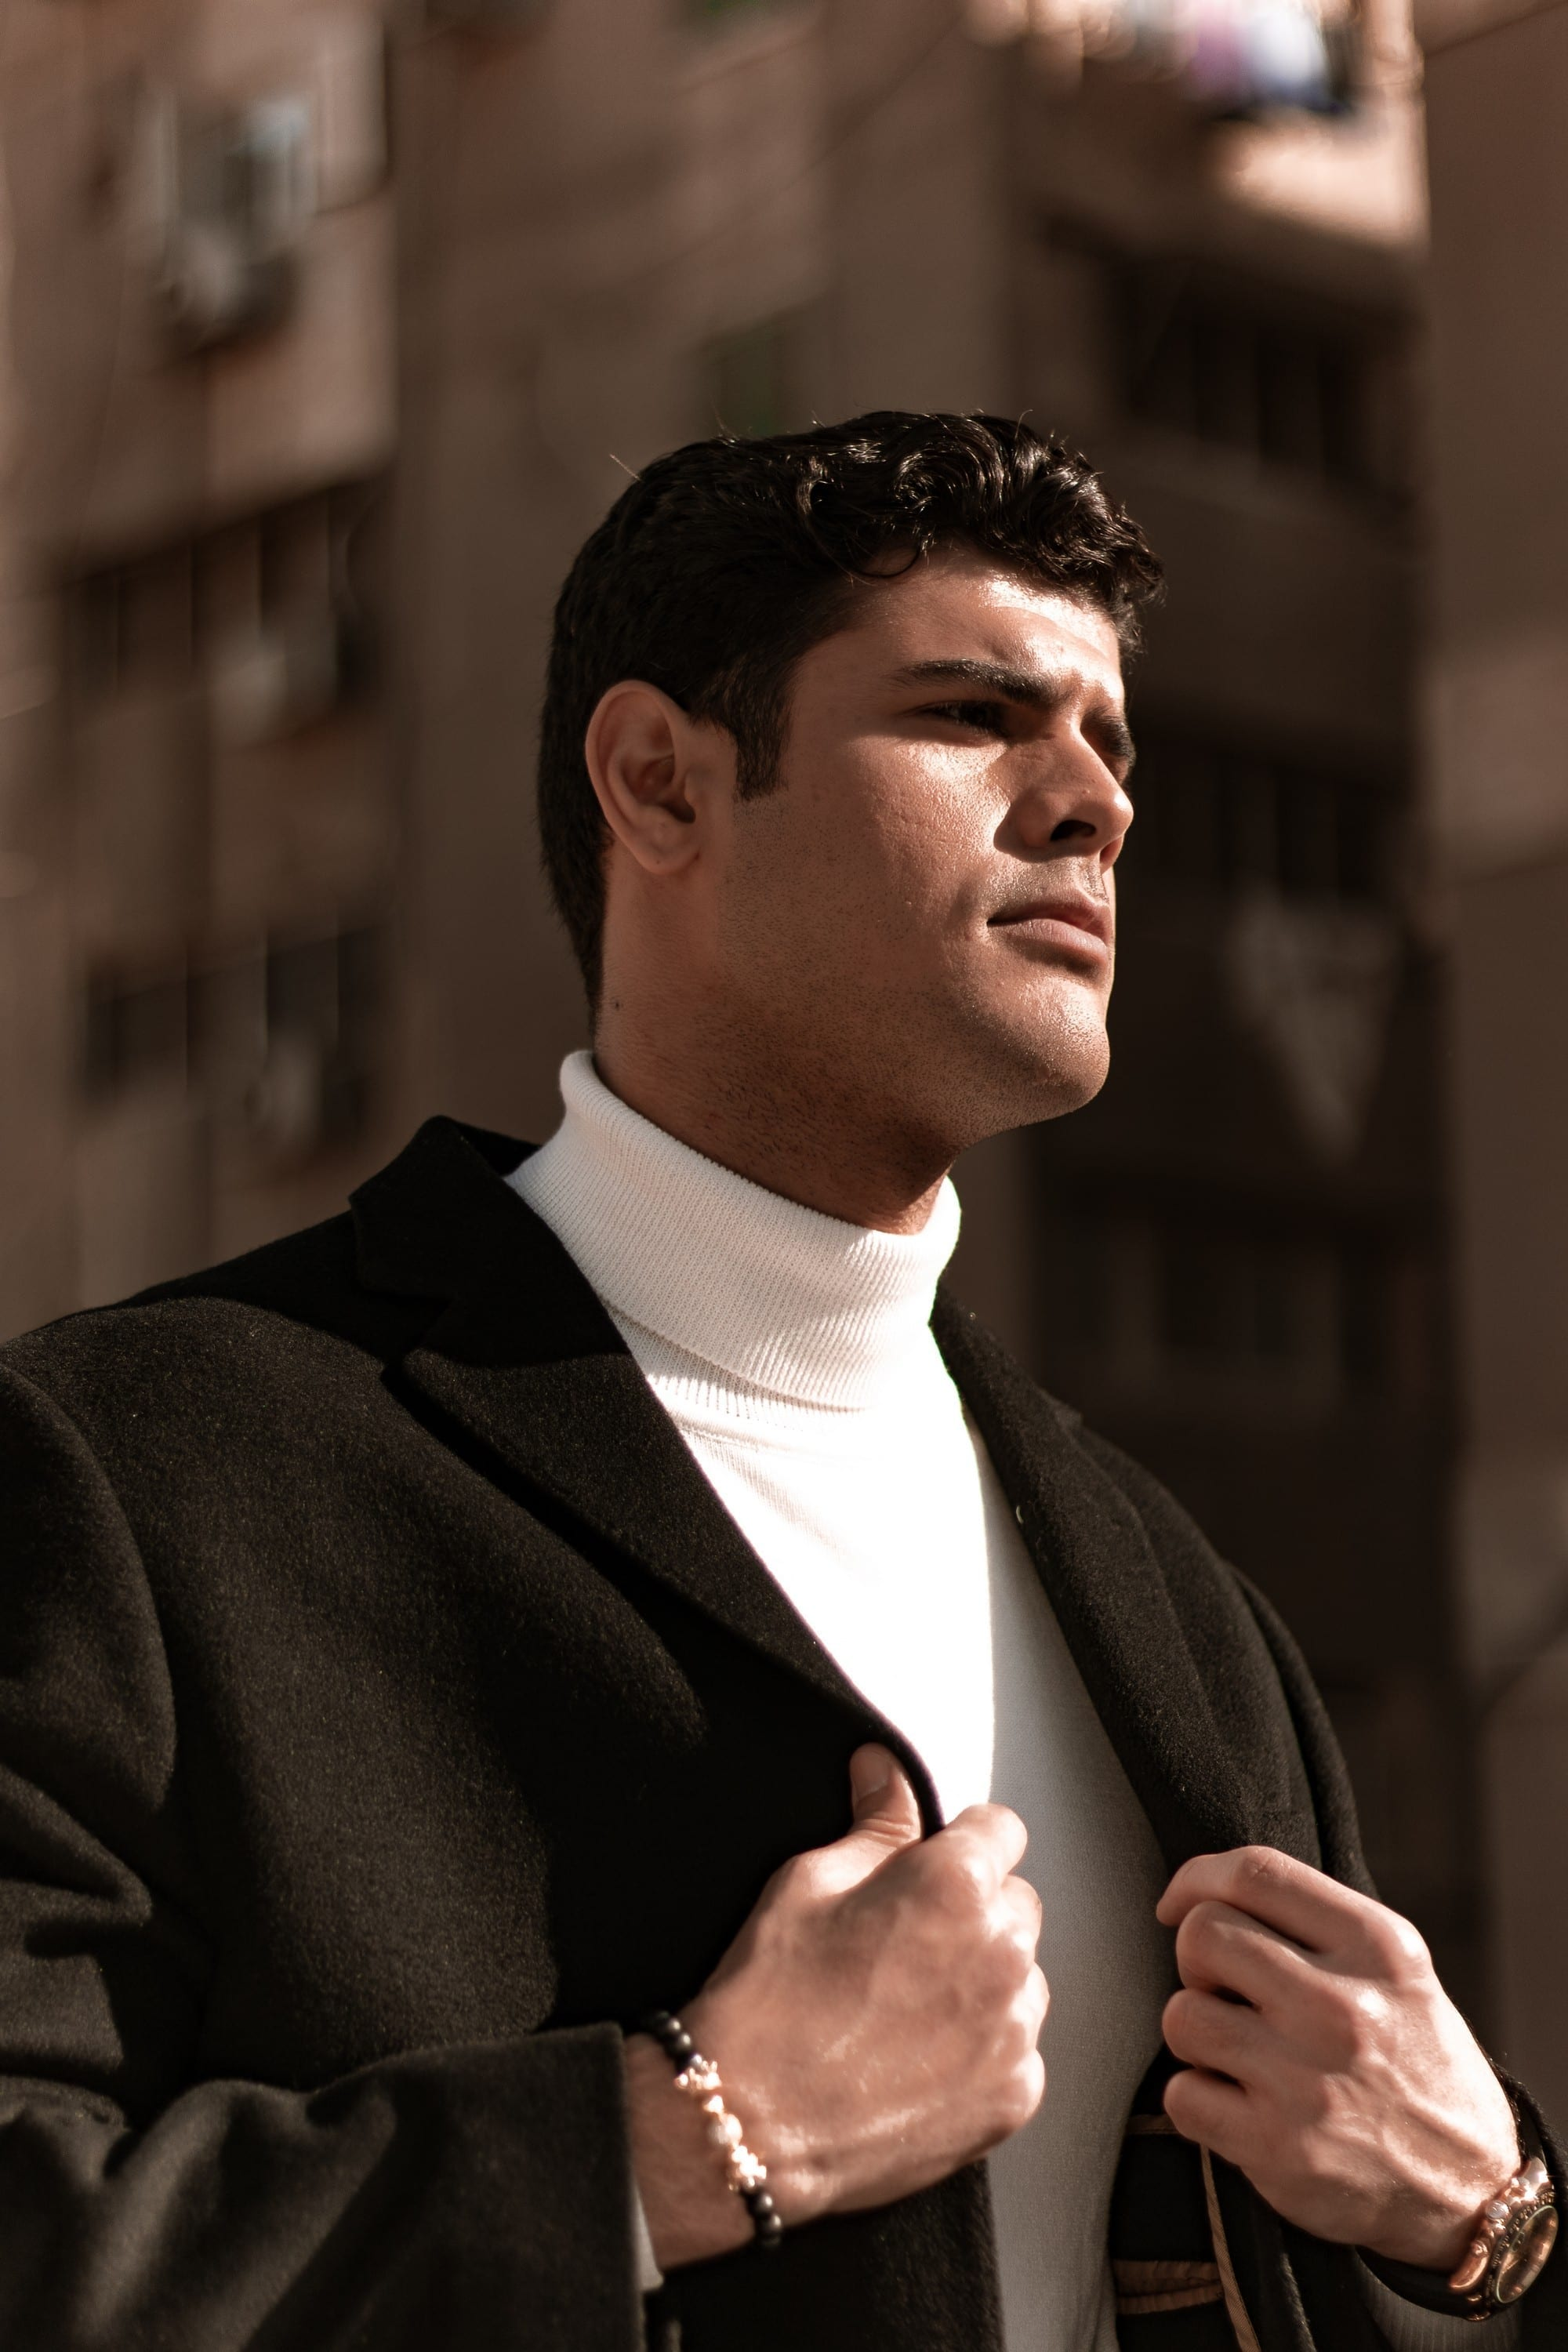 Alaa Arafa: The Egyptian Actor Who's on His Way to Become the Next Big Action Star!